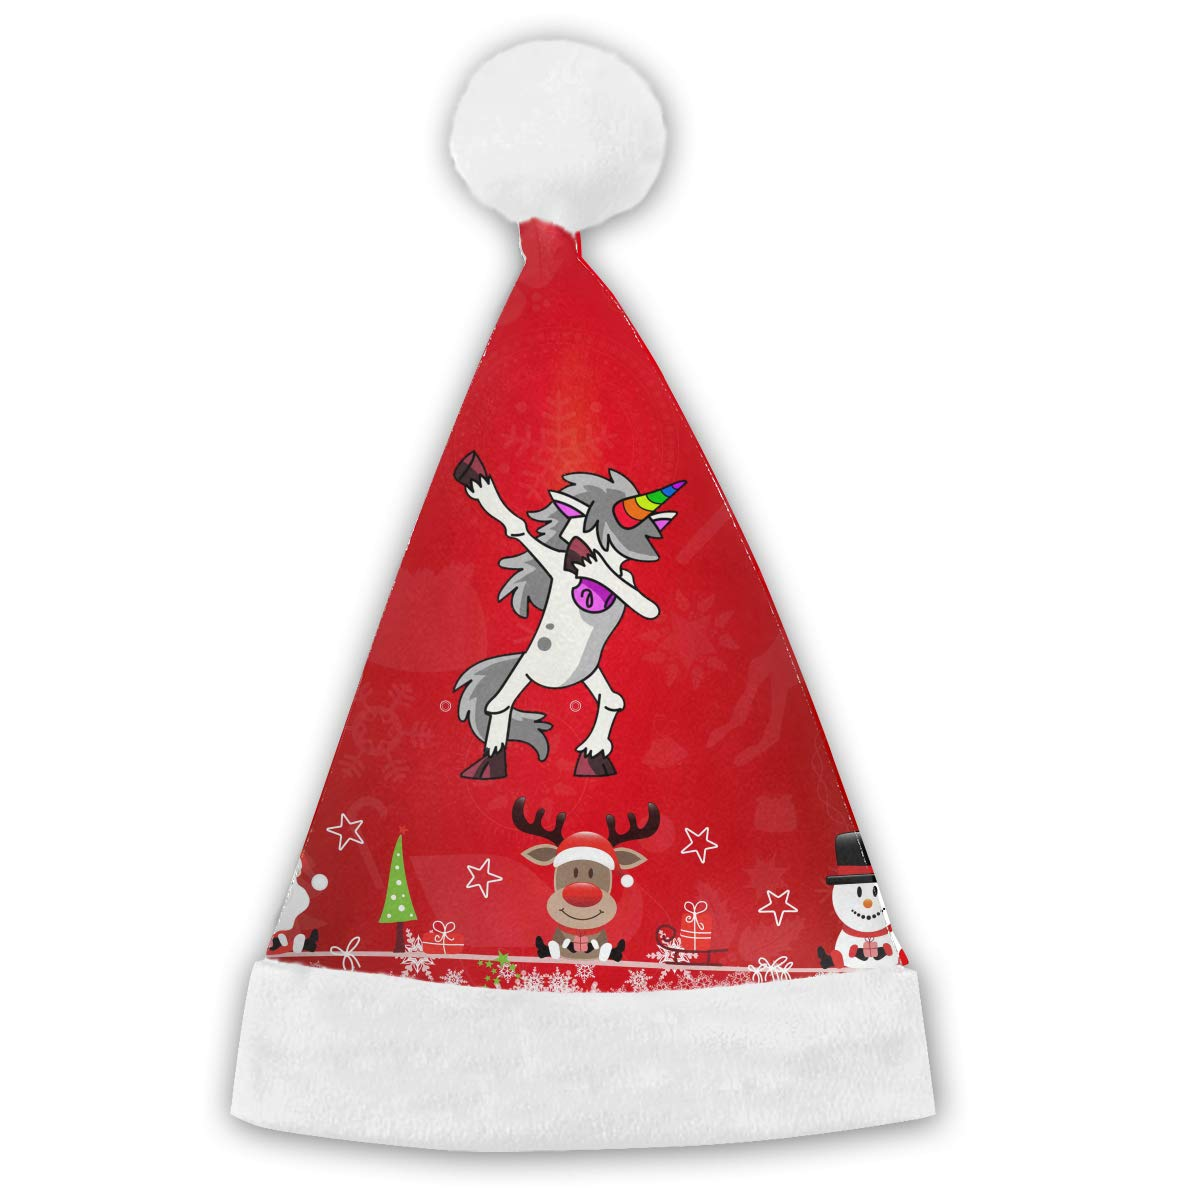 417a4ec7320d8 Dabbing Unicorn Christmas Hat Santa Claus Cap Kids Adults Festive Holiday  Hat at Amazon Men s Clothing store